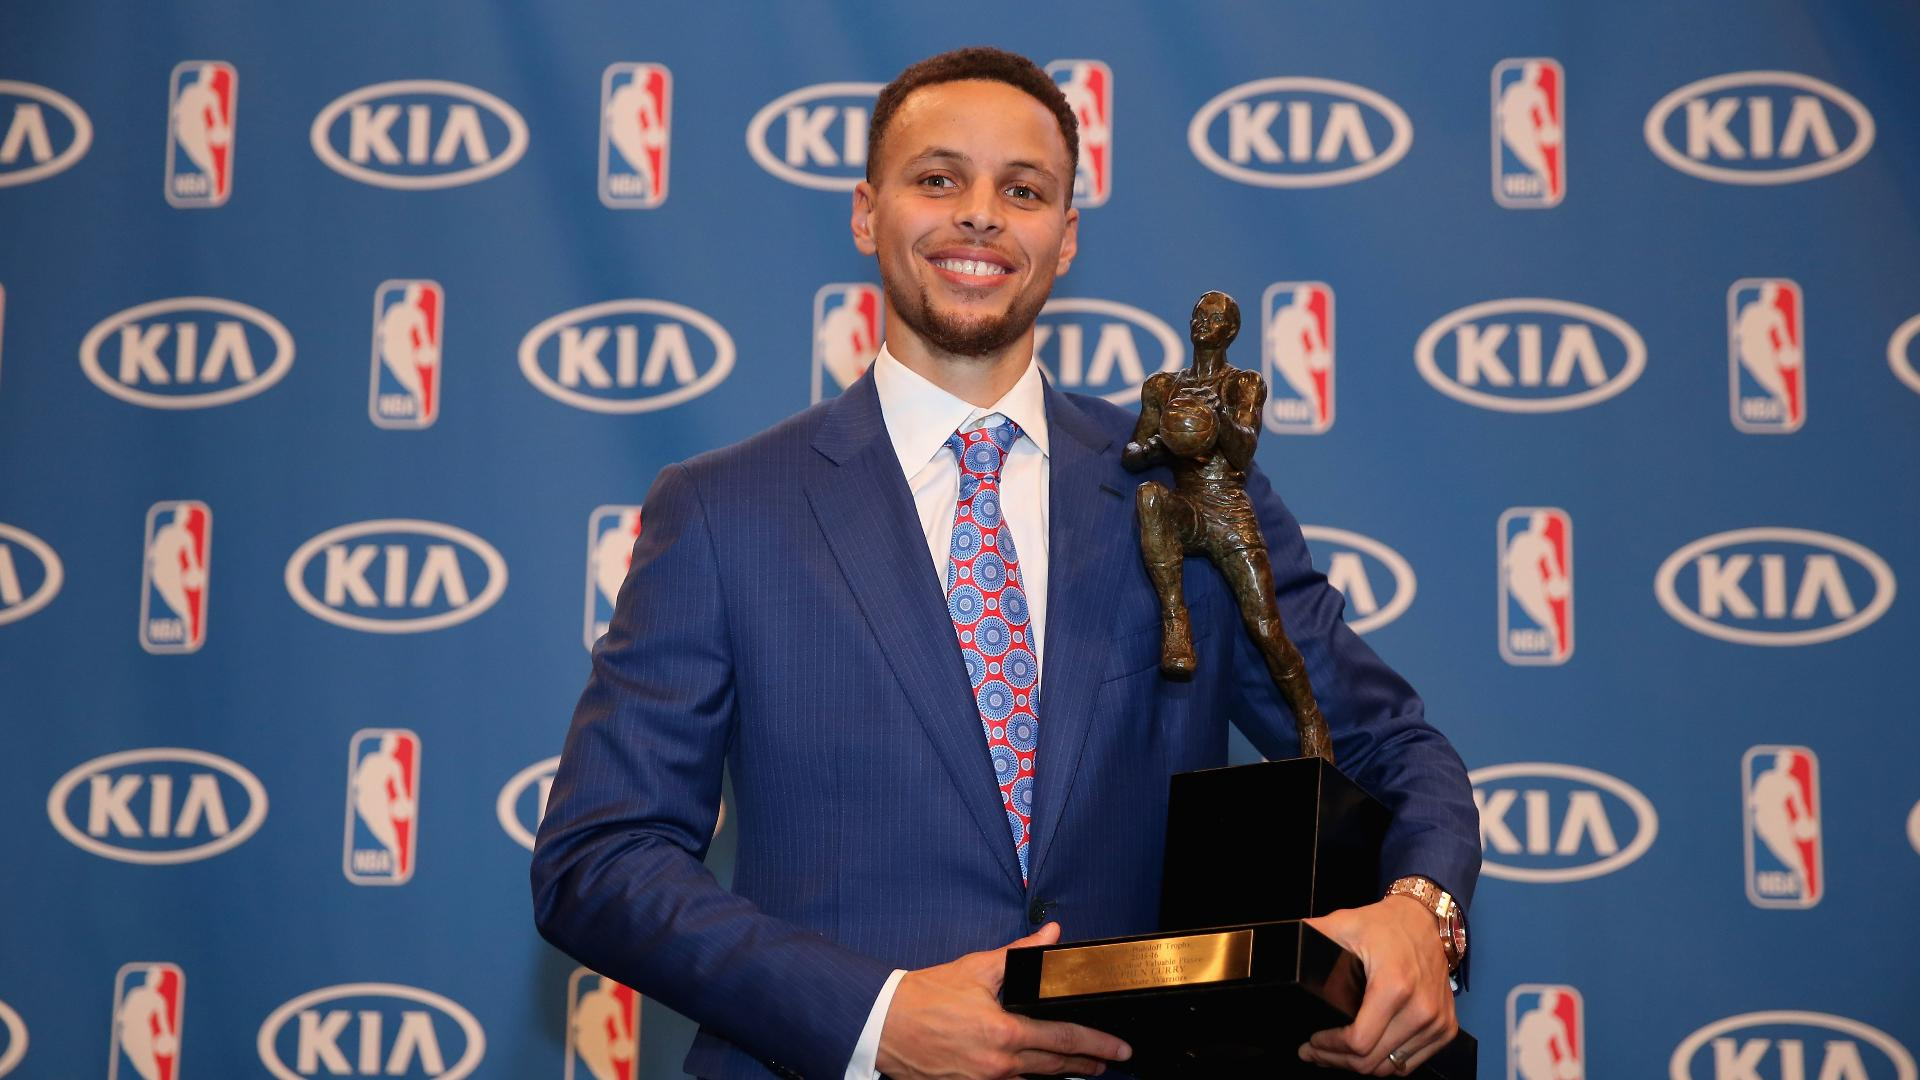 One NBA team is already preparing for an ugly Stephen Curry-Kevin Durant divorce